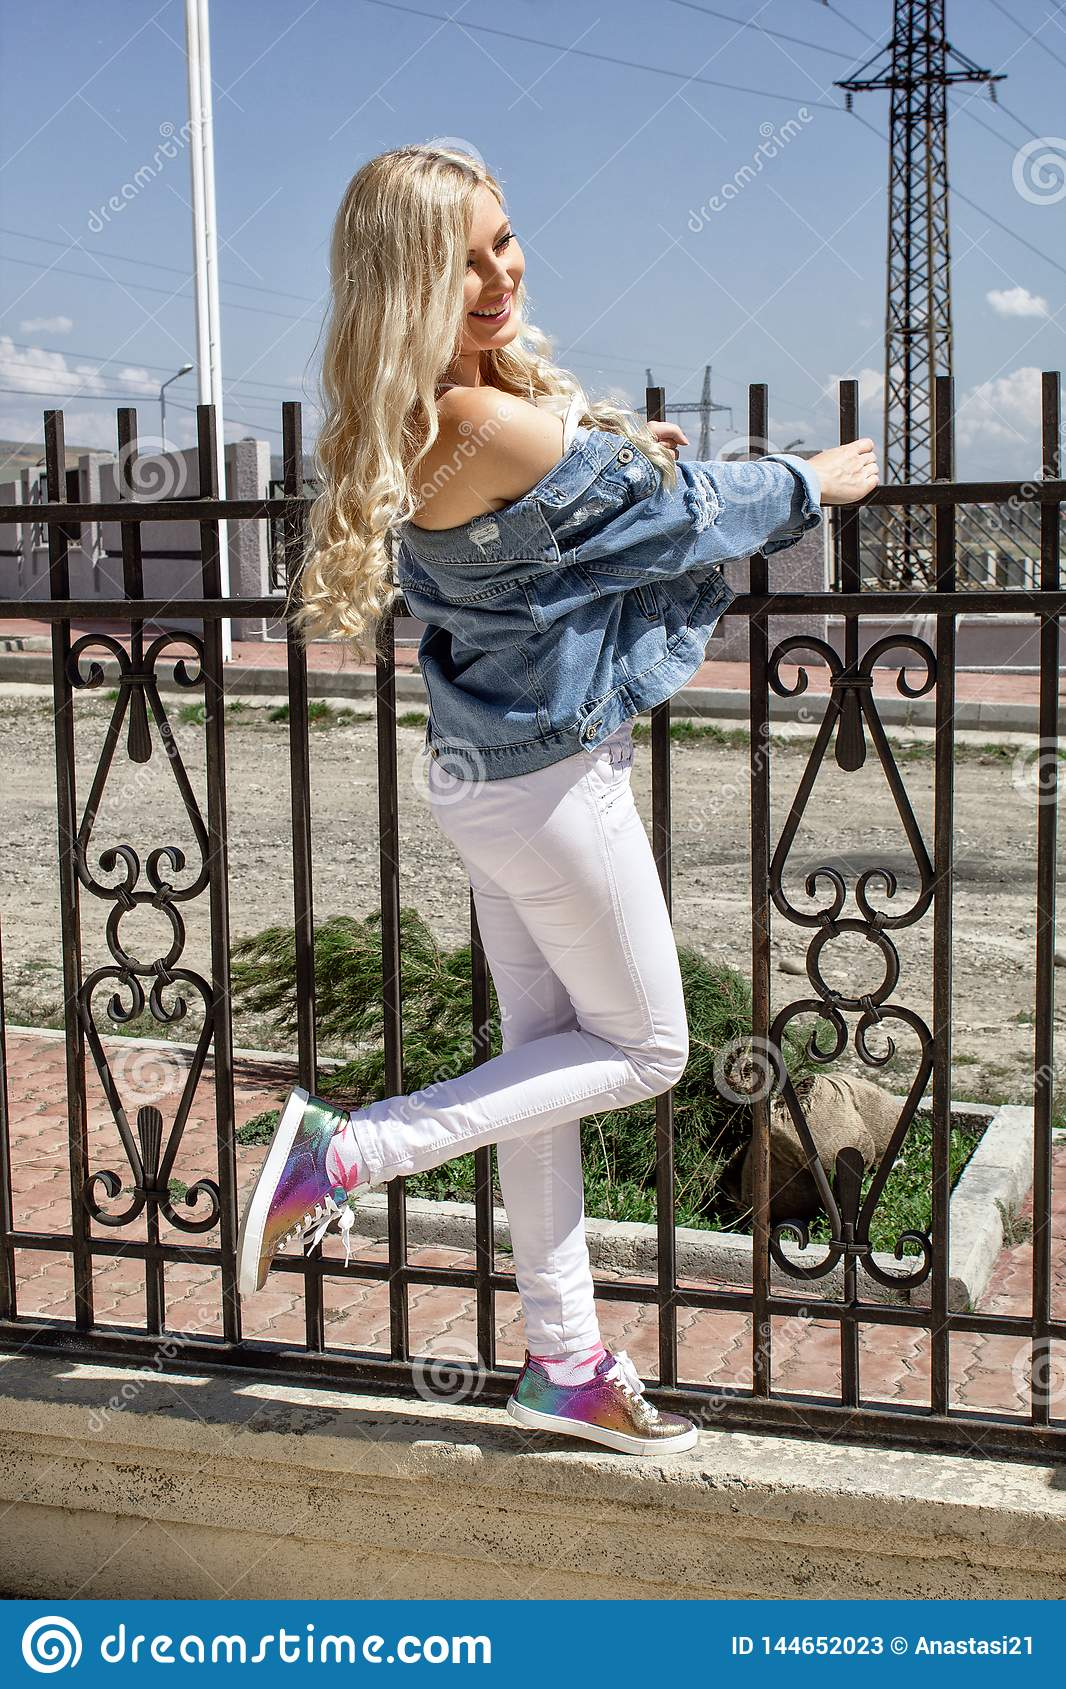 A beautiful young blond woman smiles, stands by the fence, and beautifully poses.